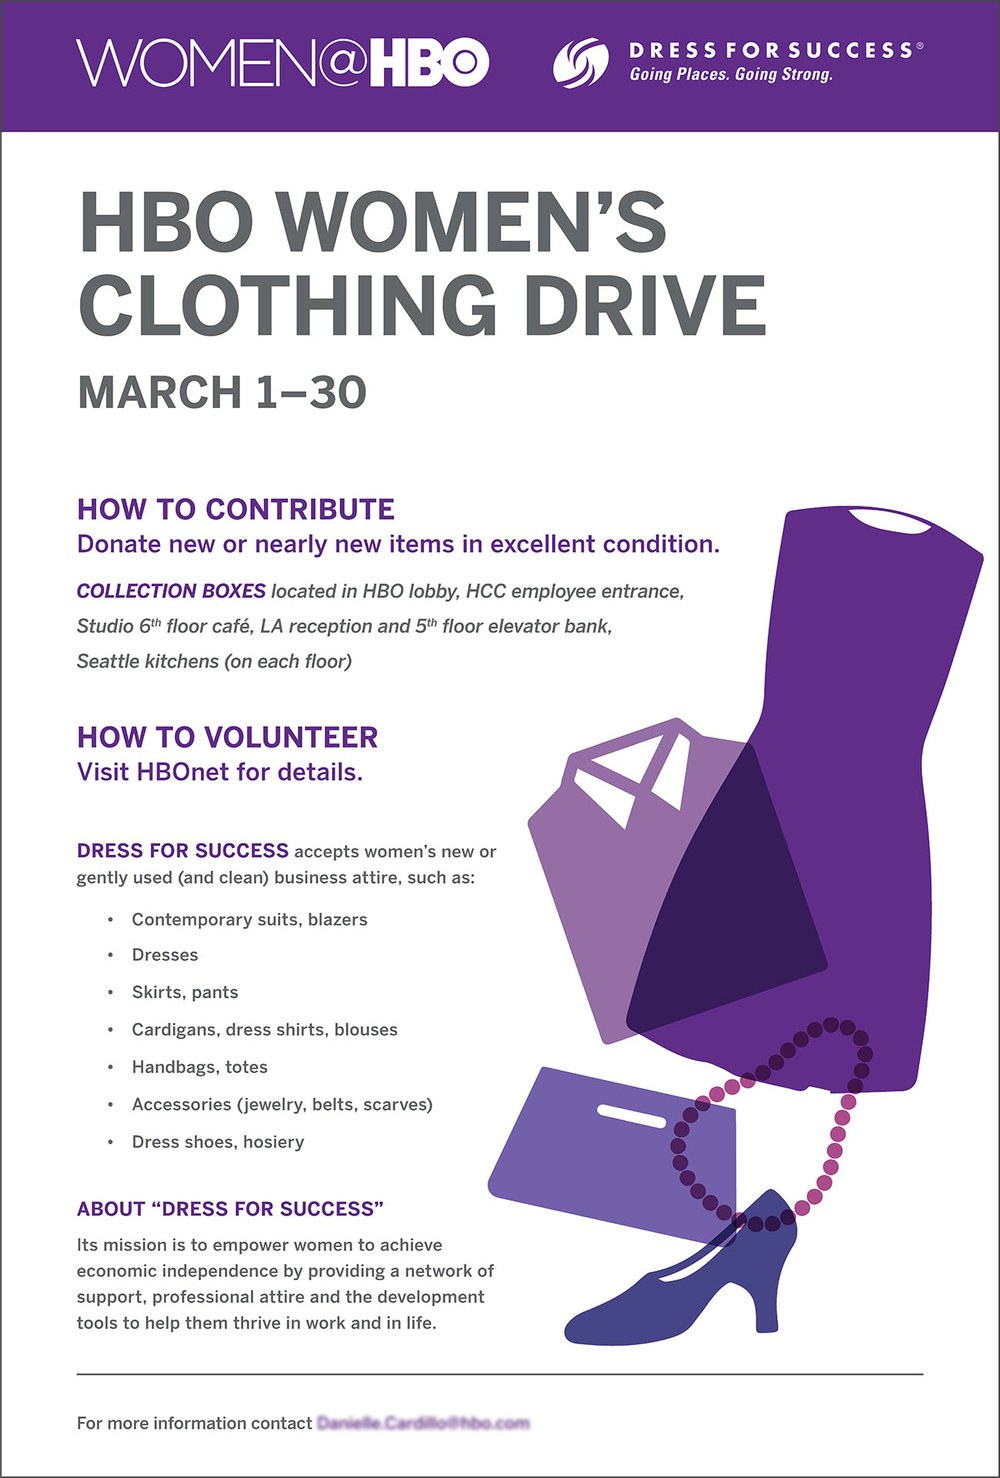 W@HBO Clothing Drive and Volunteer_PO.jpg